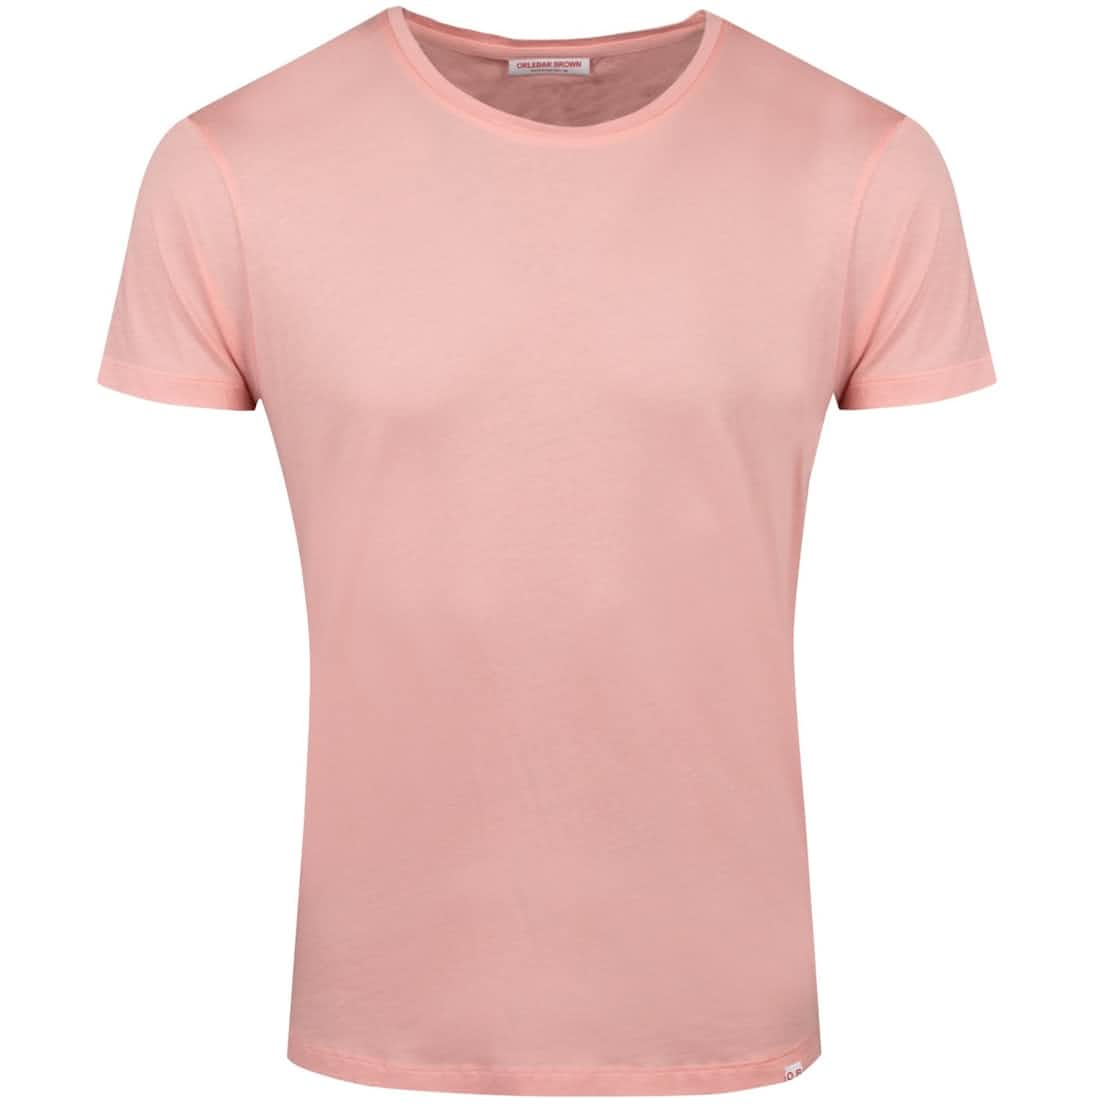 OB-T Round Neck T-Shirt Sundown Pink Melange - Summer 20